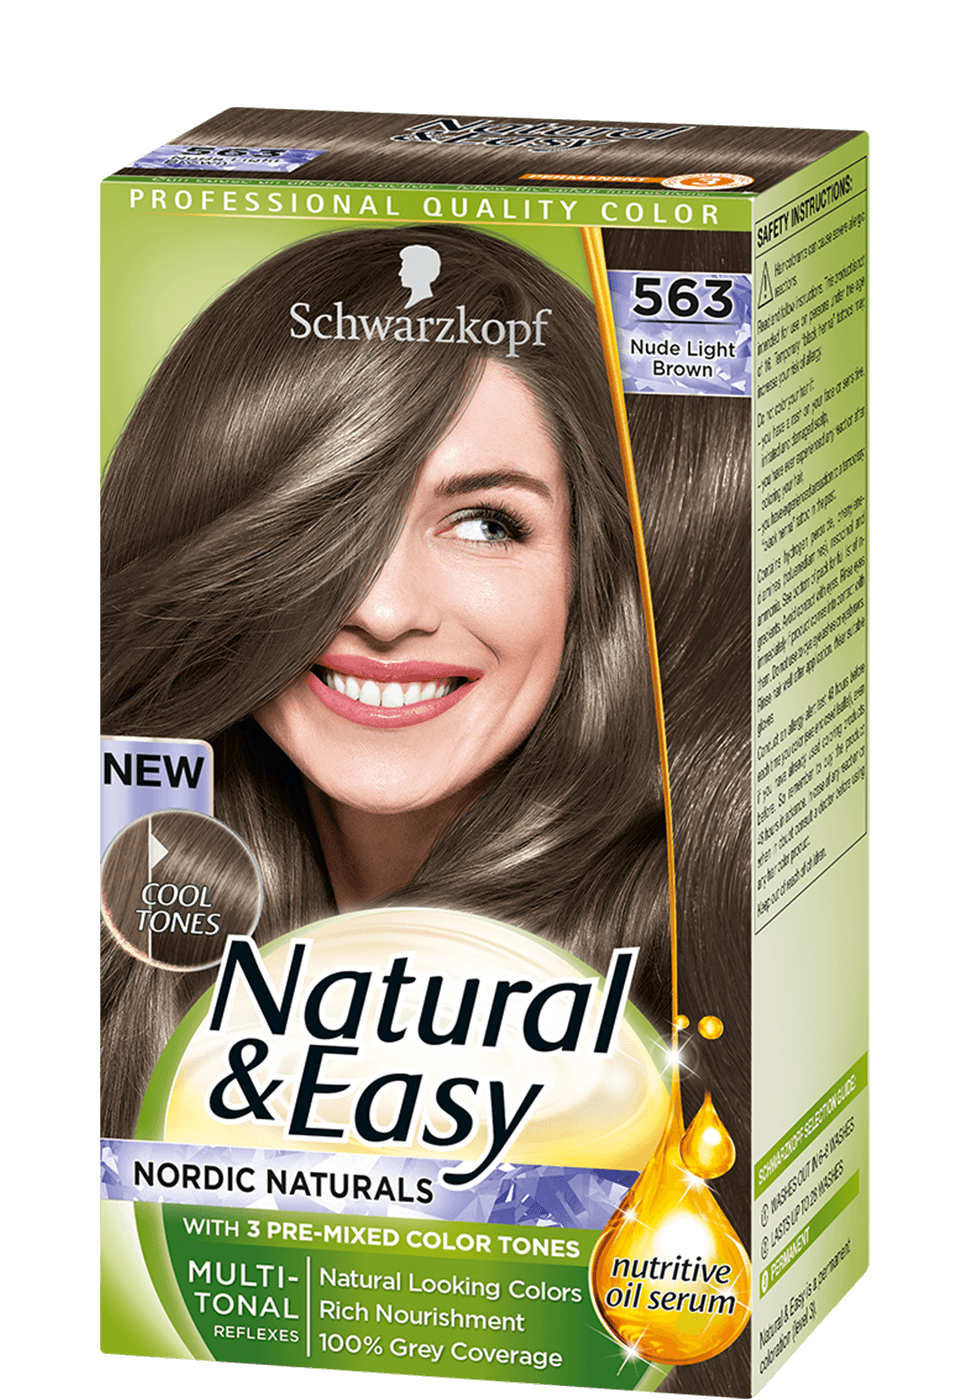 natural_easy_com_blonde_hair_563_nude_light_brown_970x1400